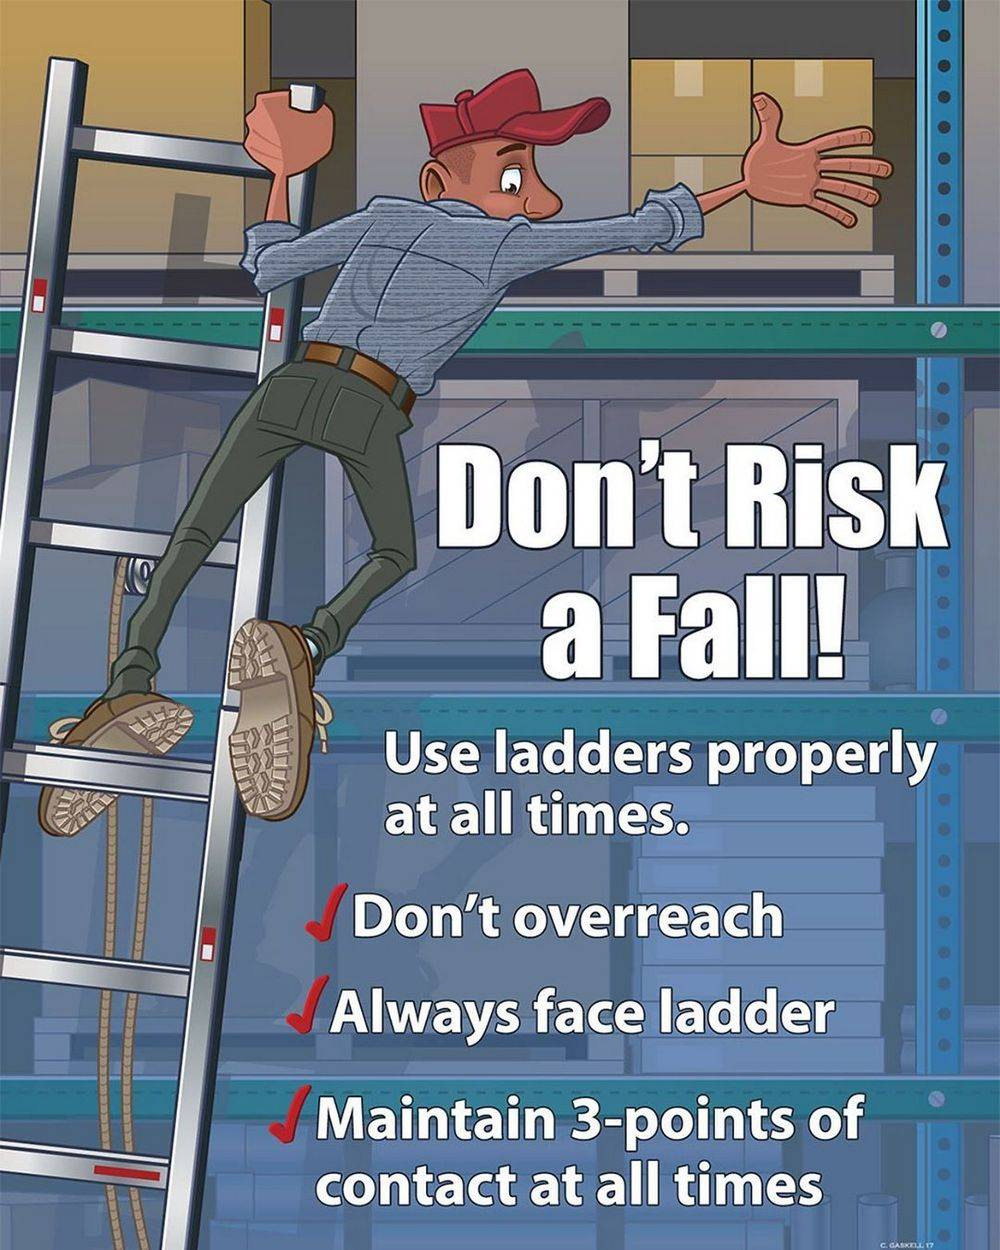 Basic Ladder Safety Rules